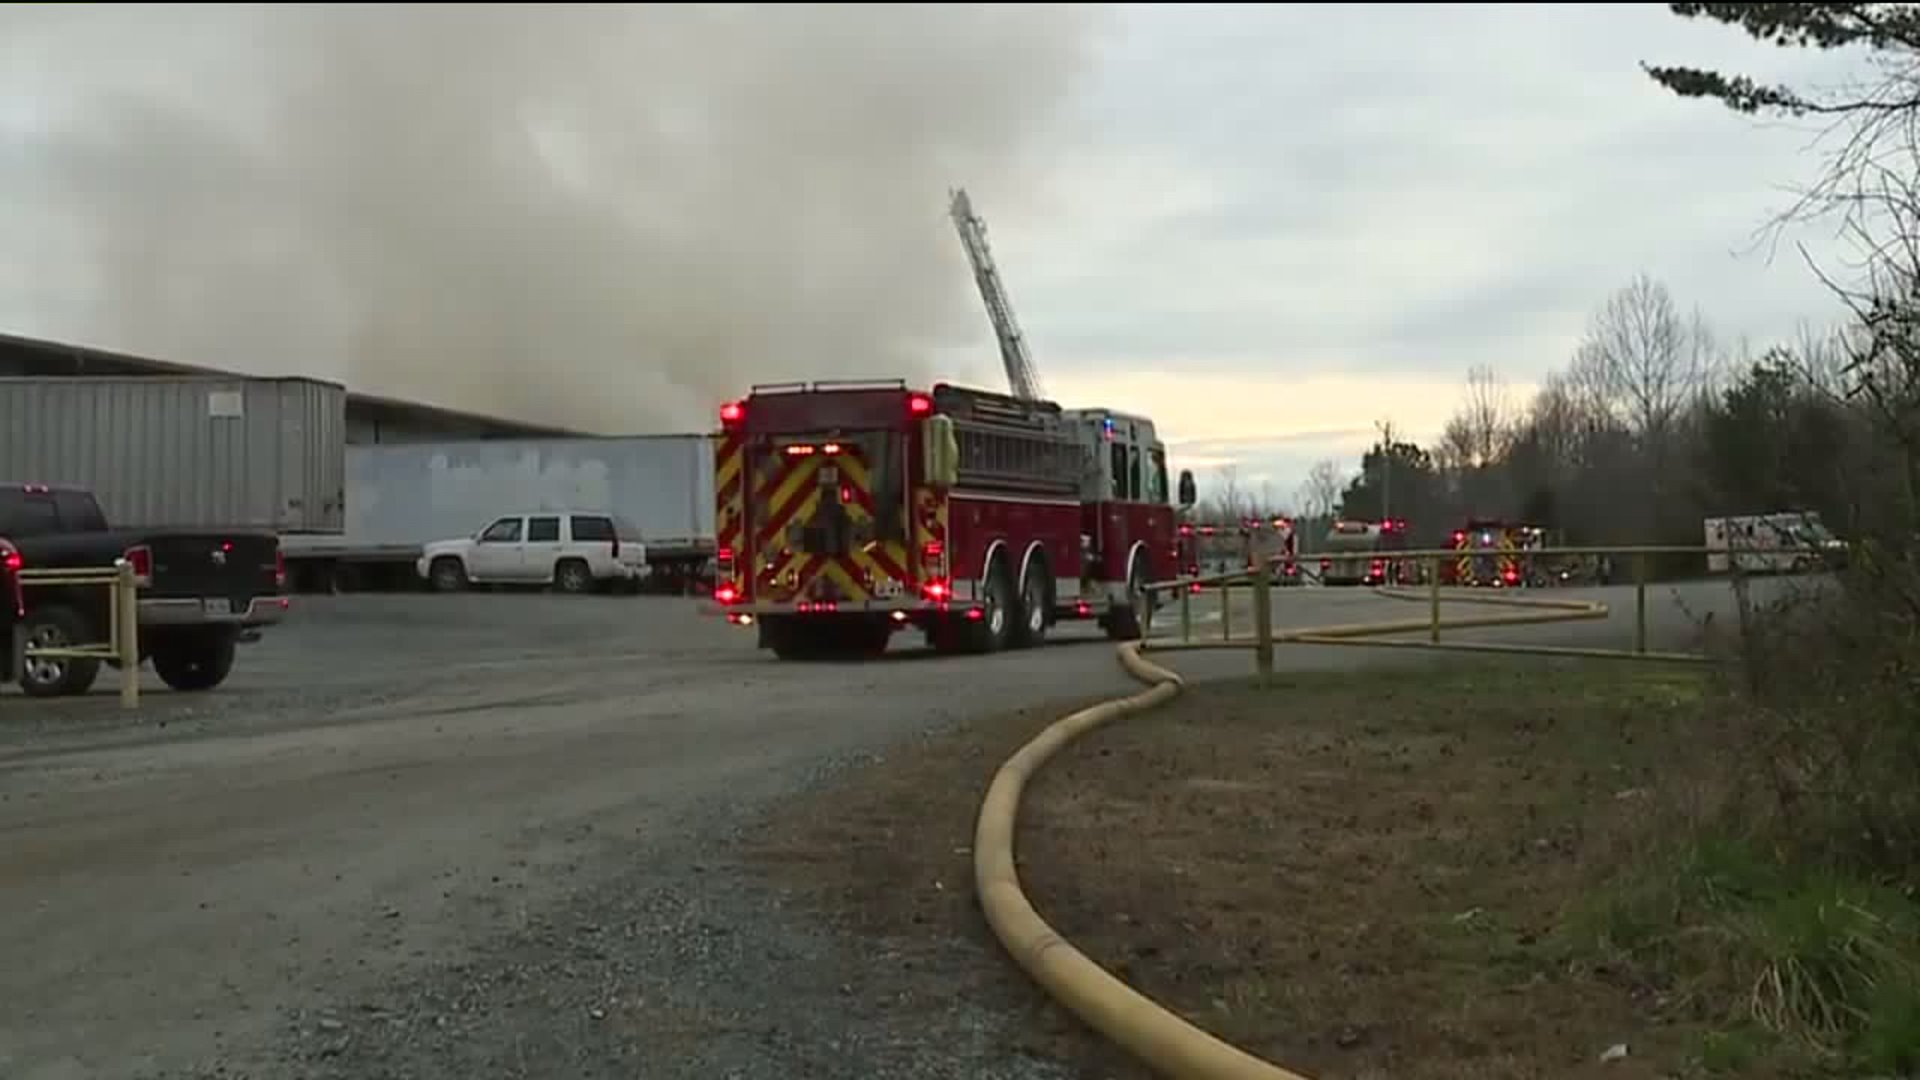 Crews spent hours working to put out a fire at May Furniture in Ramseur, according to Randolph County 911 Communications.